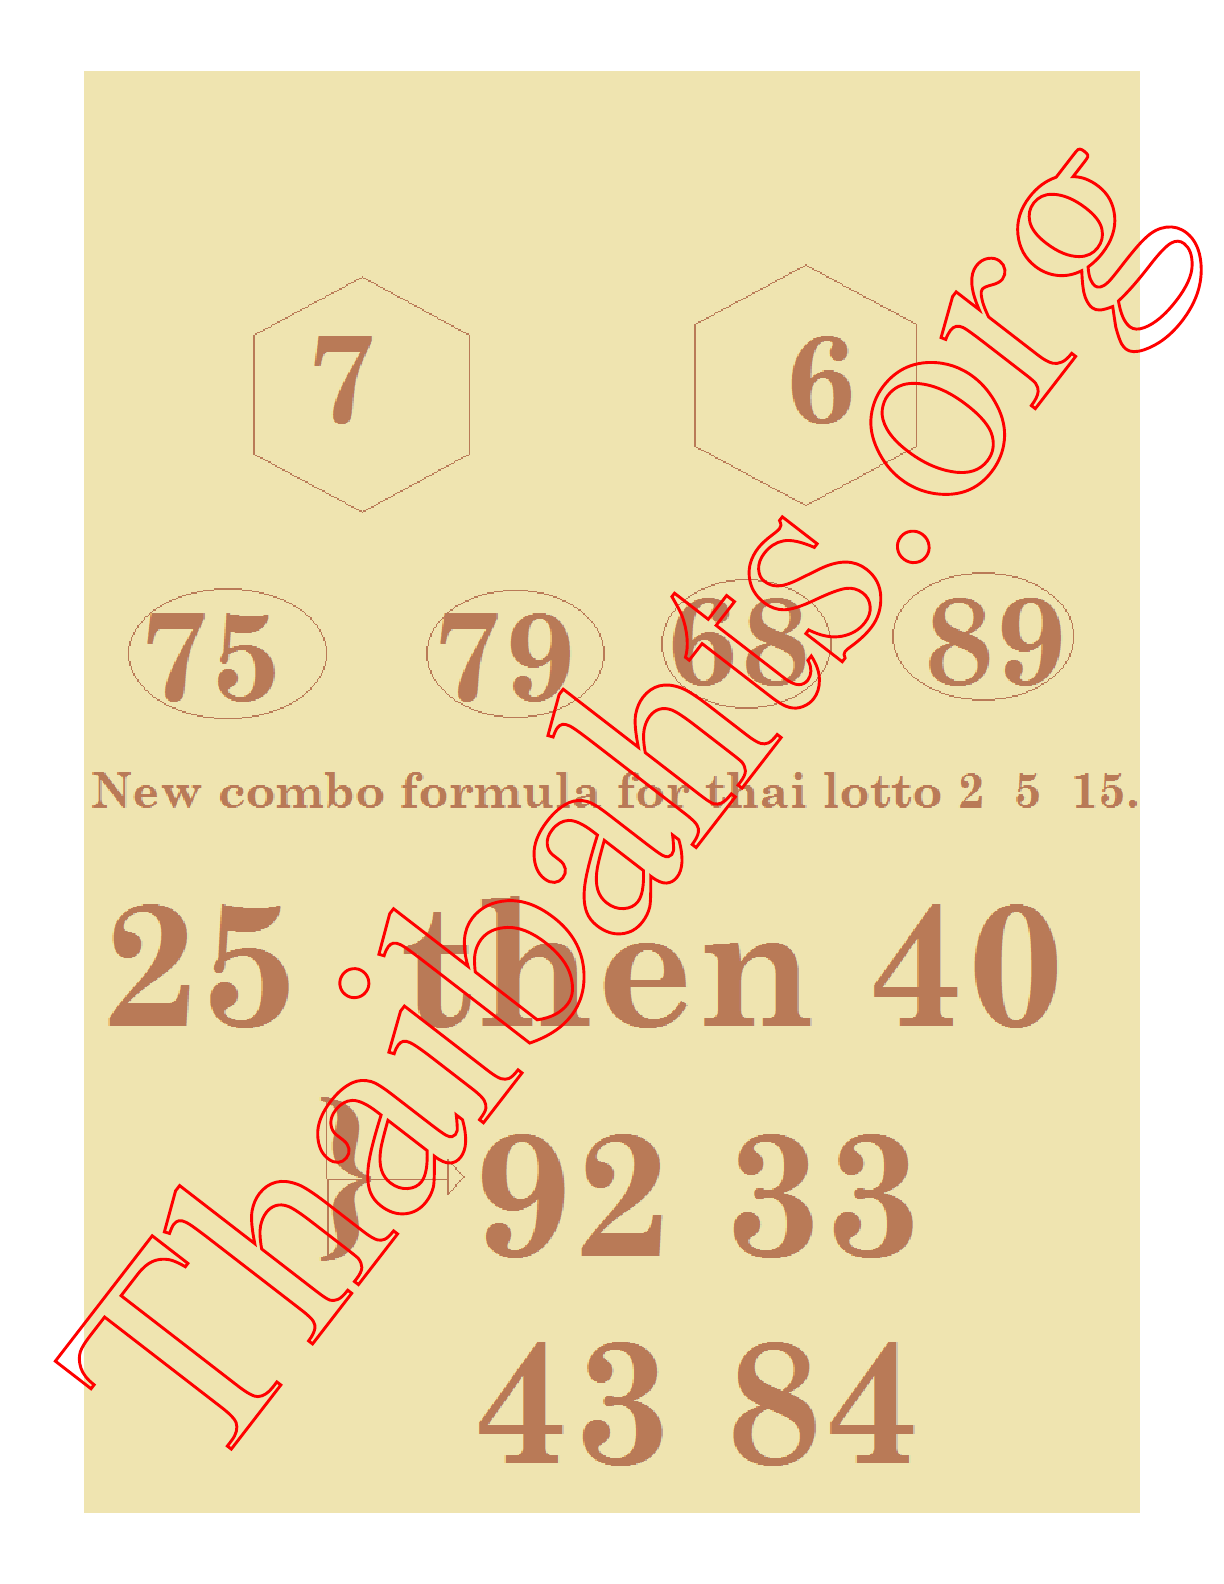 thai lotto 2-5-2015 may pappesr